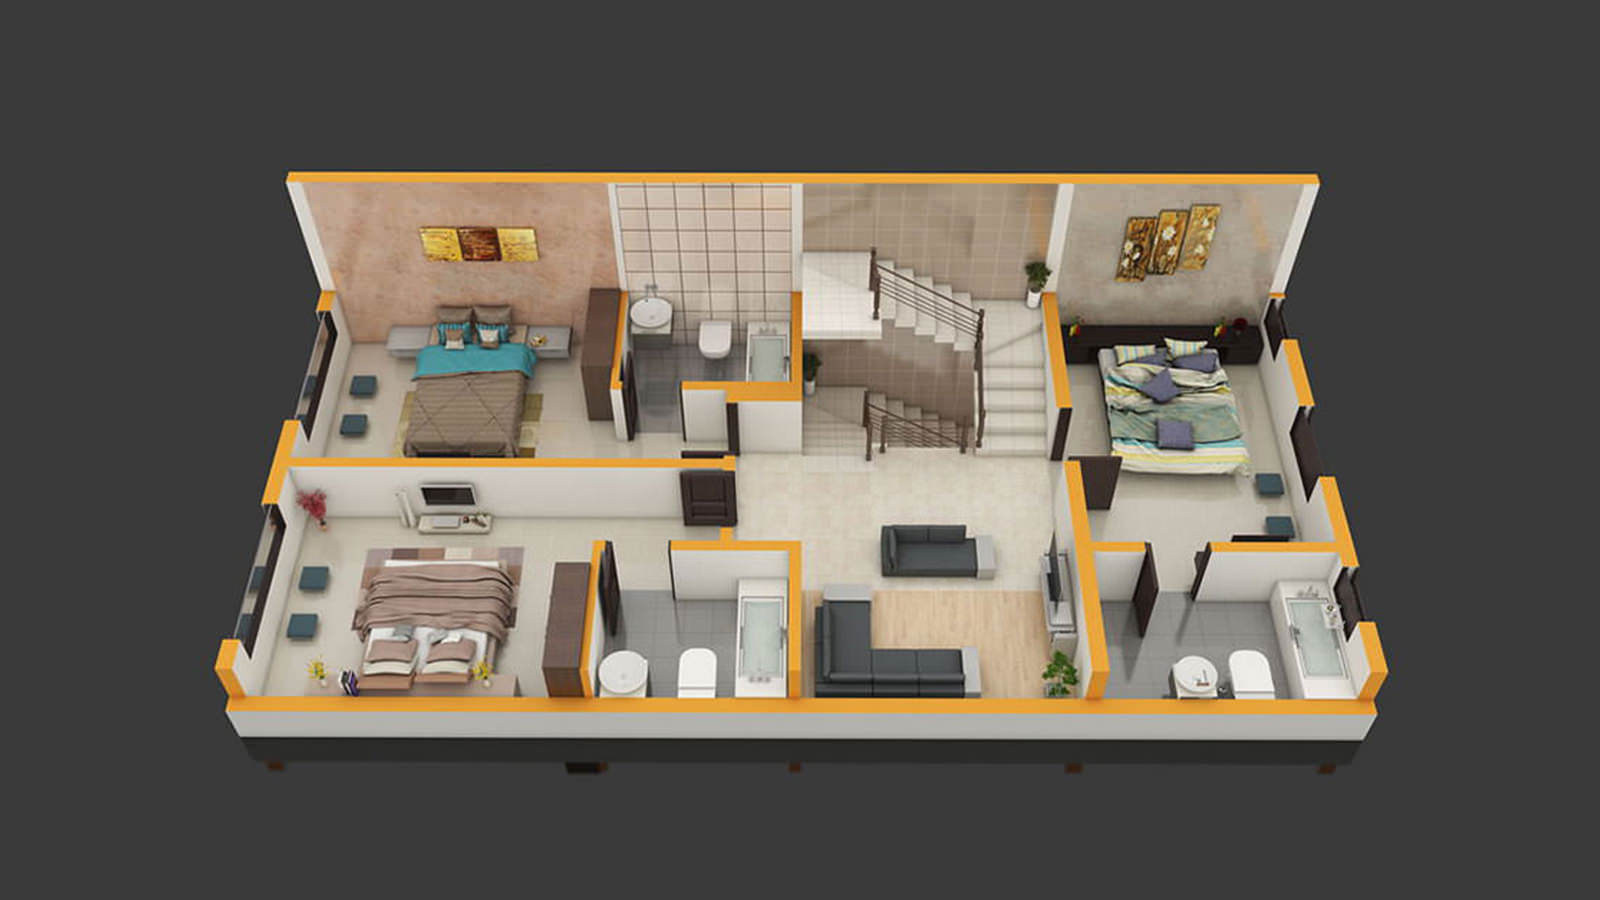 3d Uplifts The Floor Plan To Reality